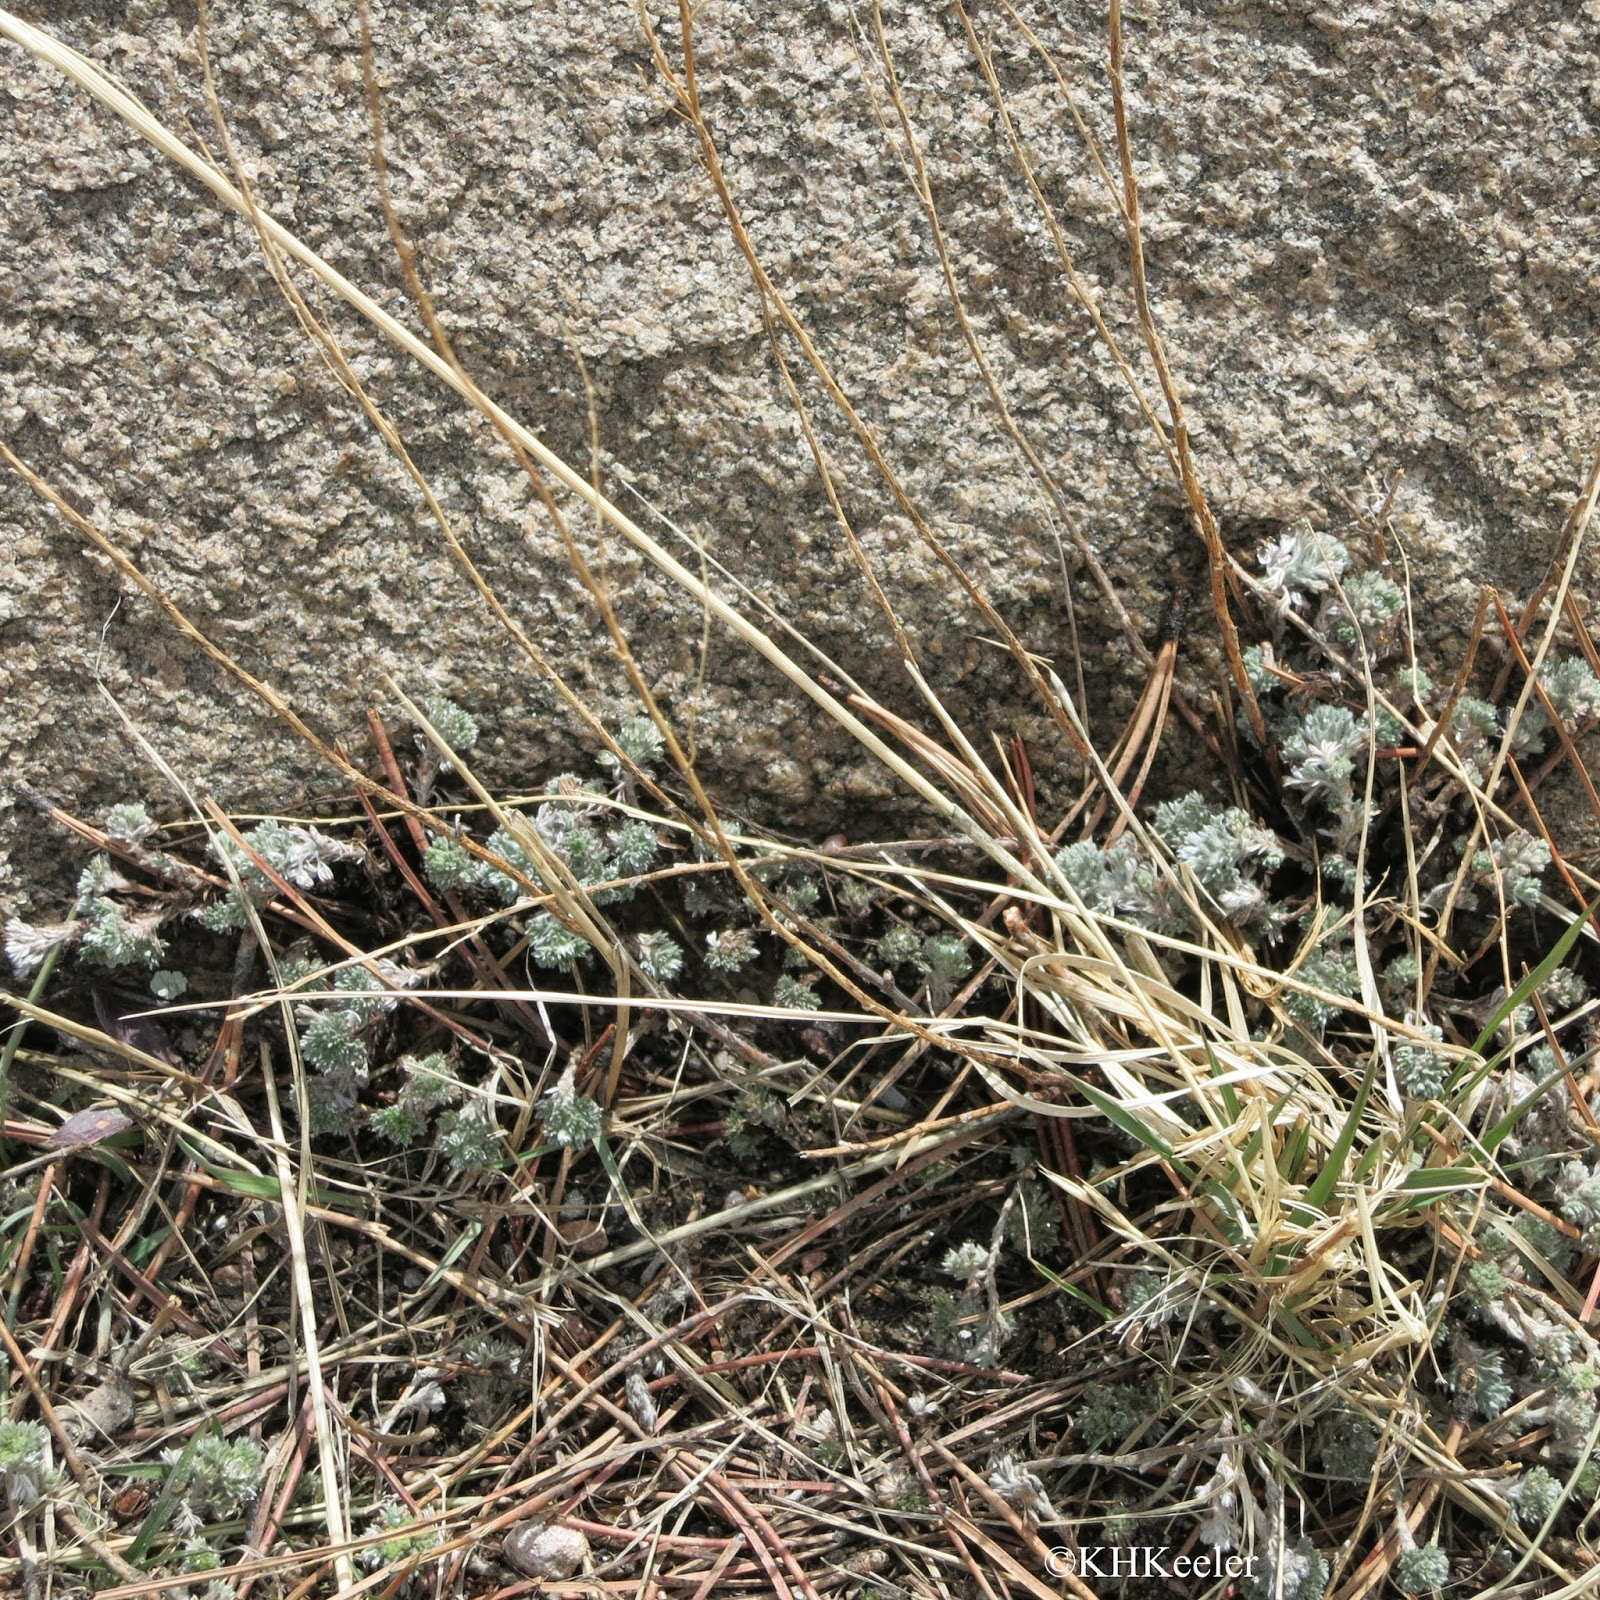 the little sage plants are turning green